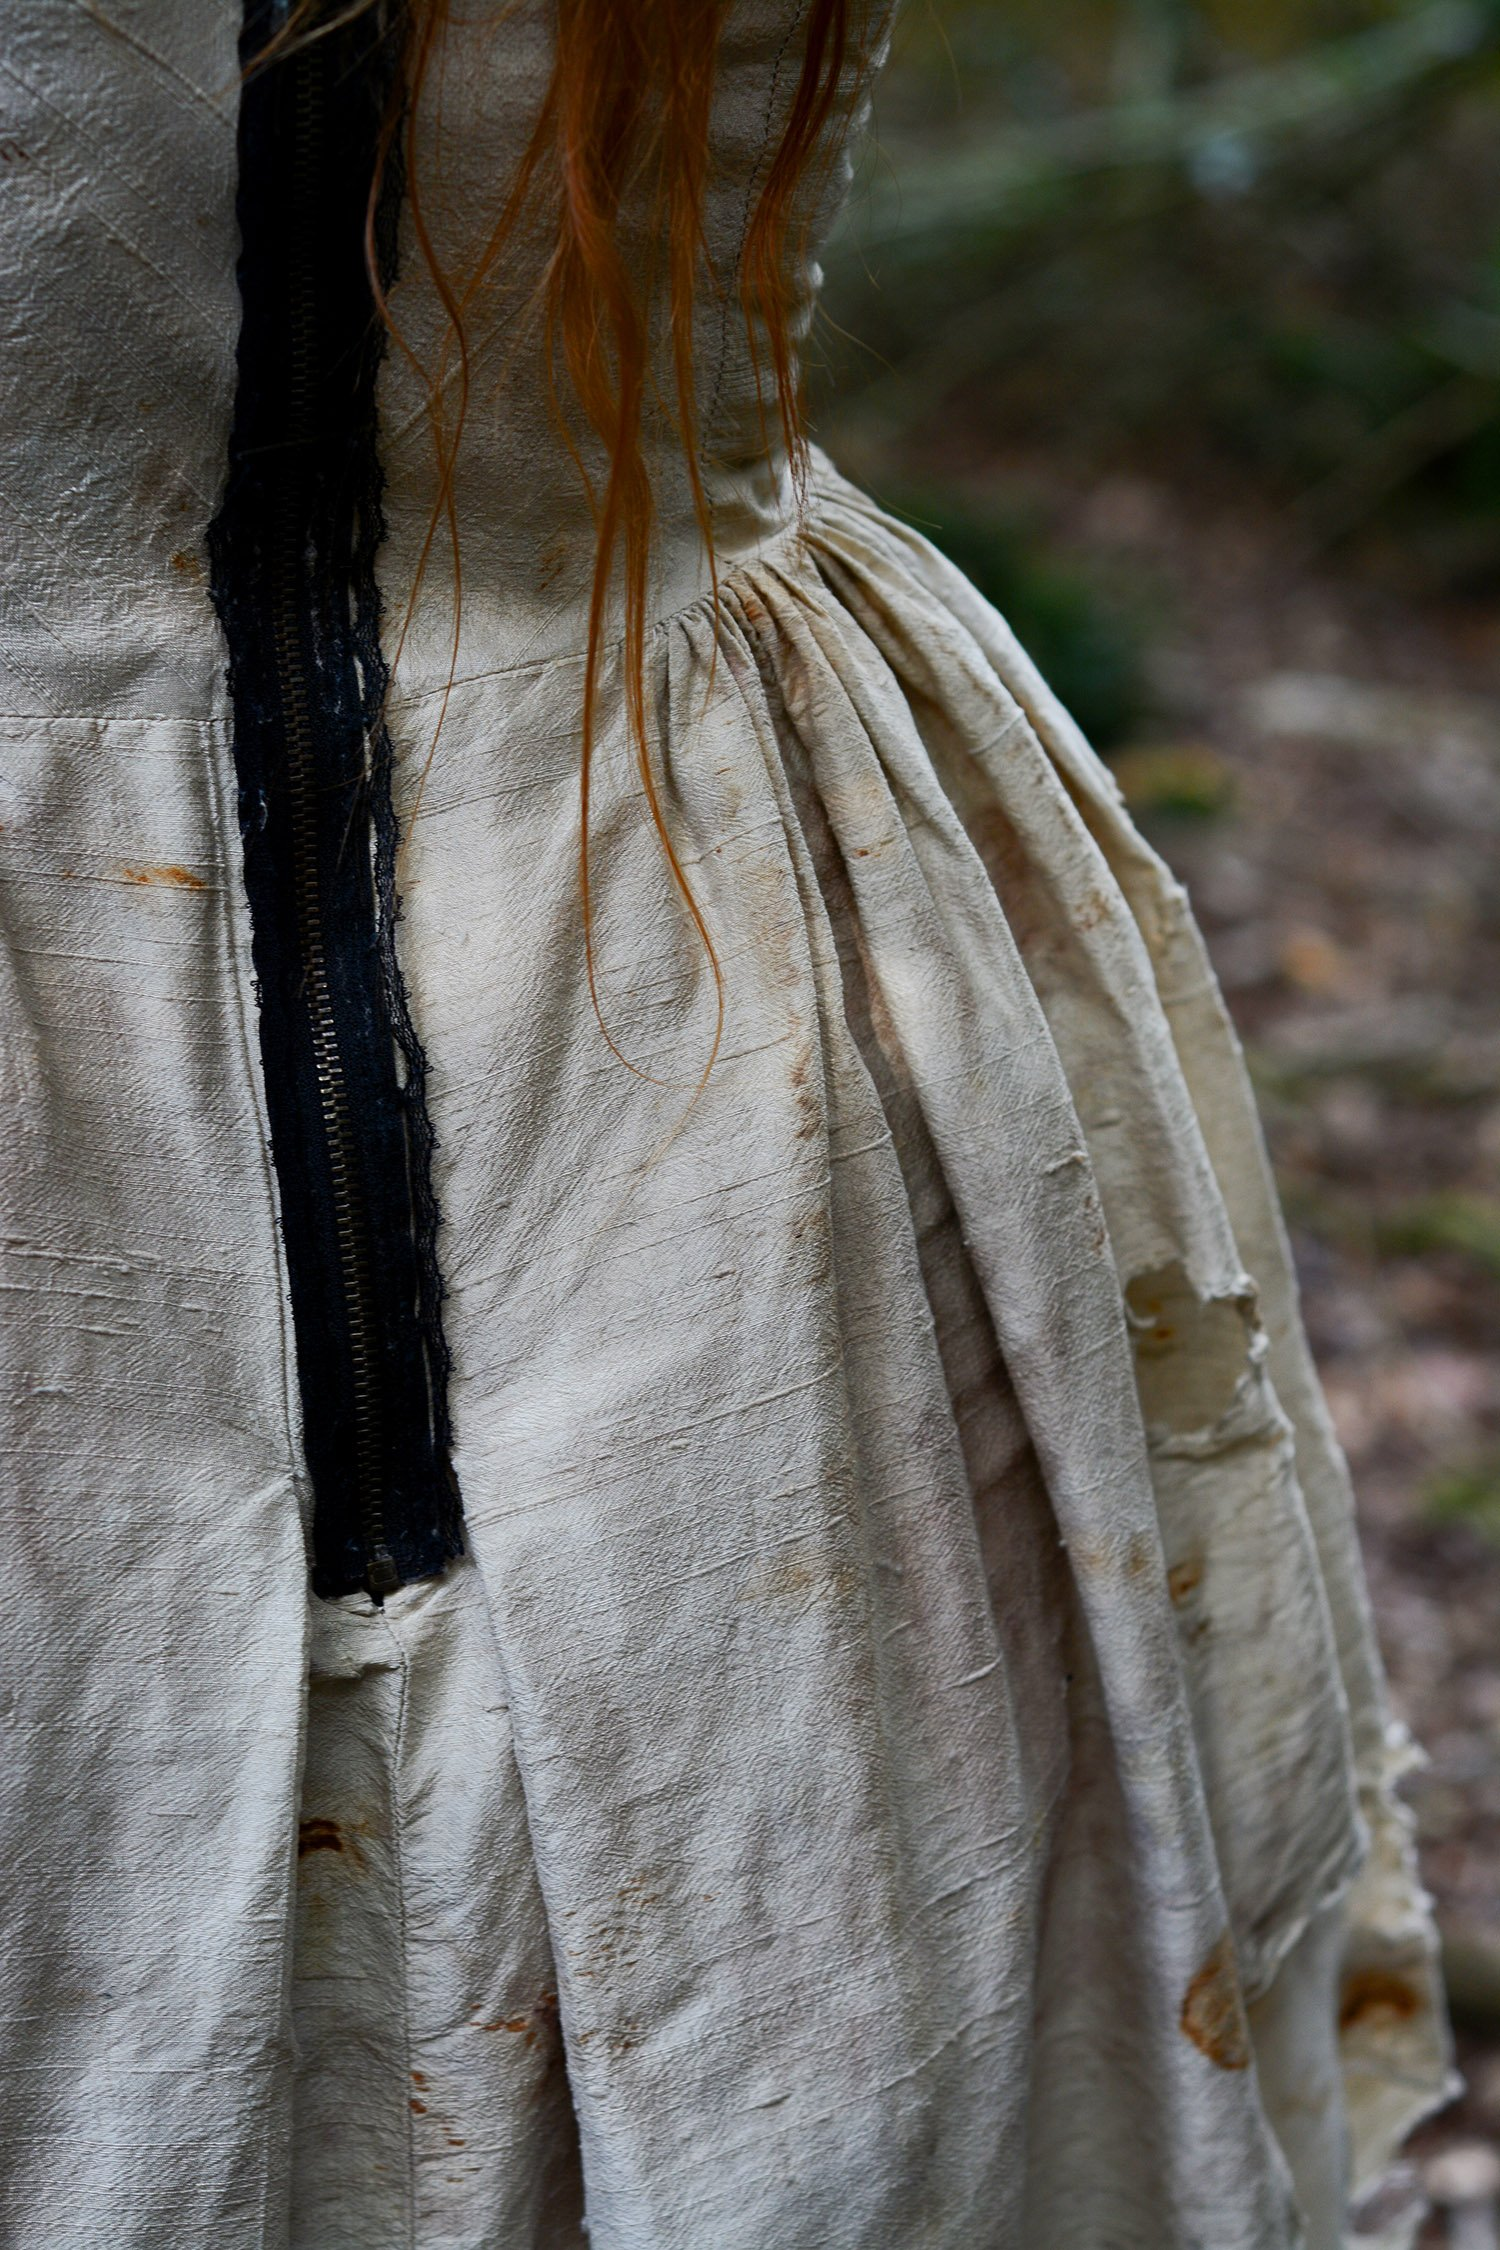 Detail of buried dress